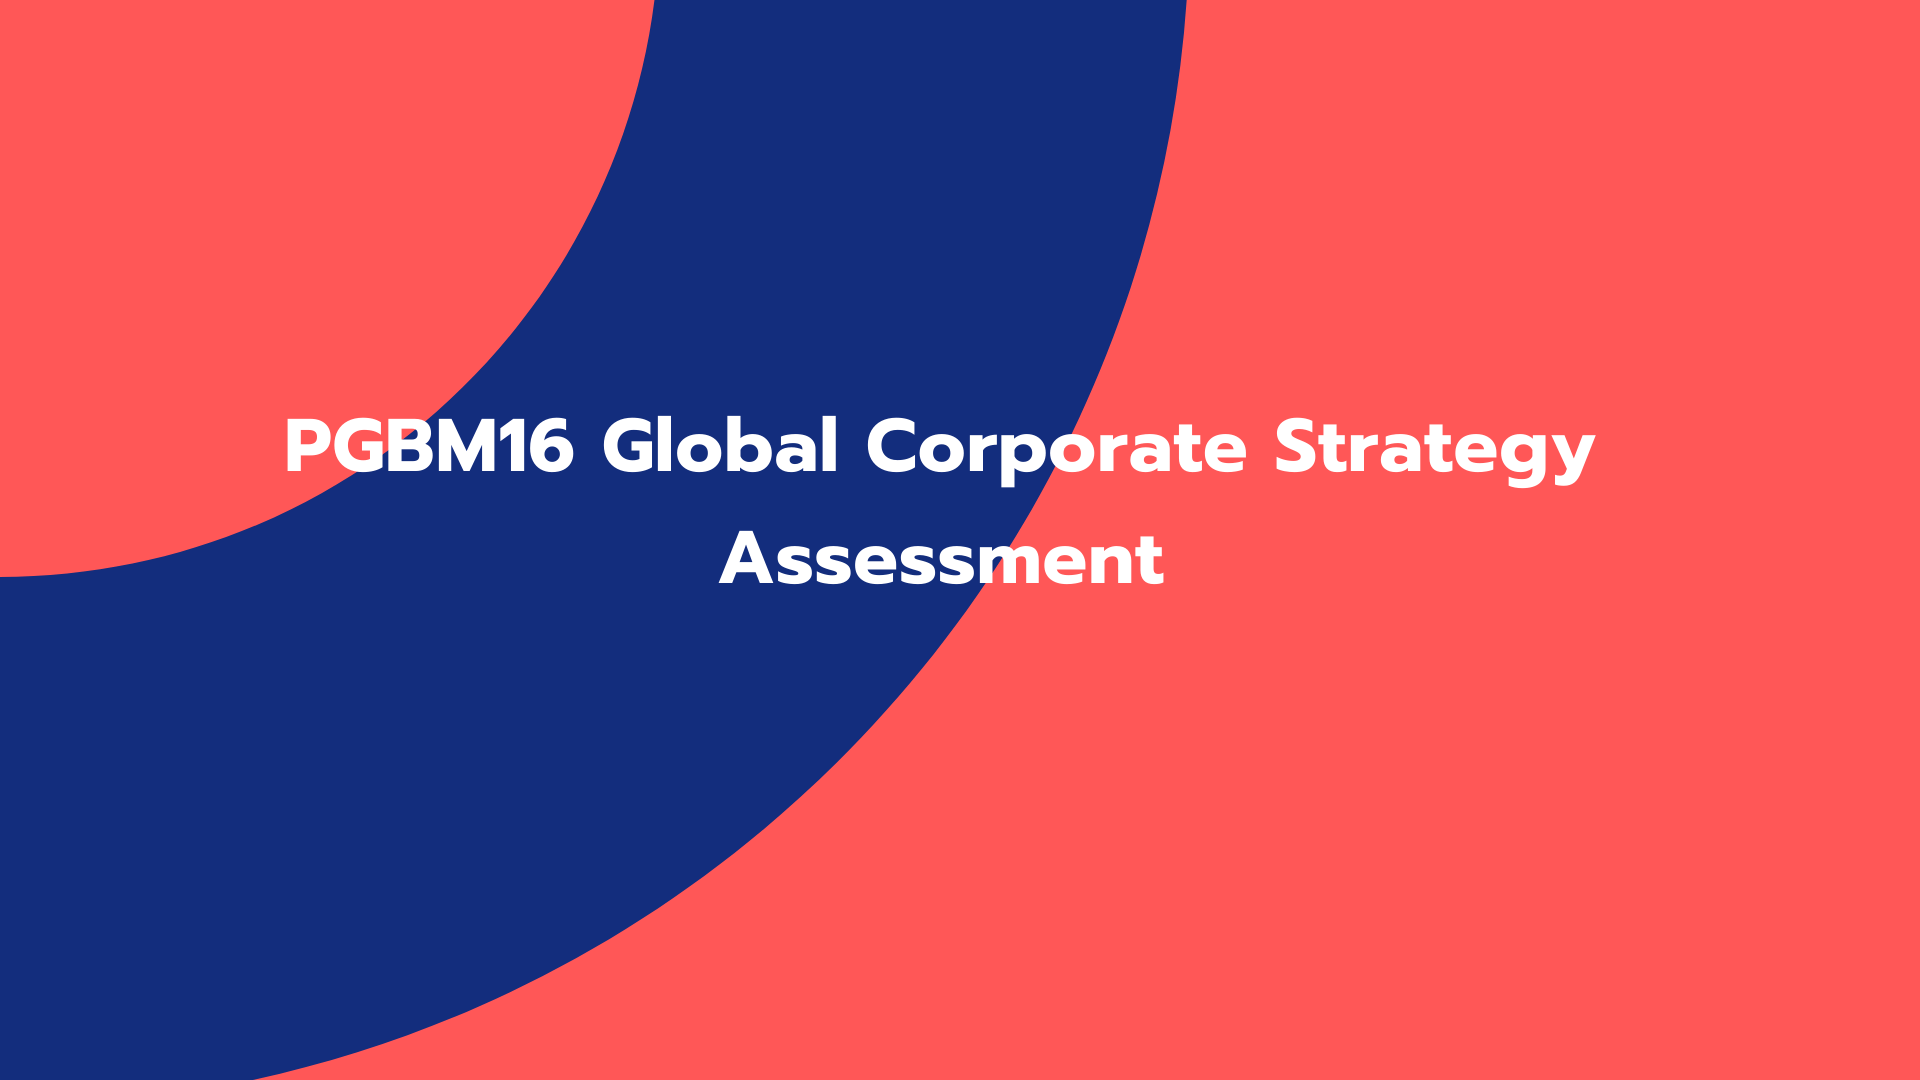 PGBM16 Global Corporate Strategy Assessment